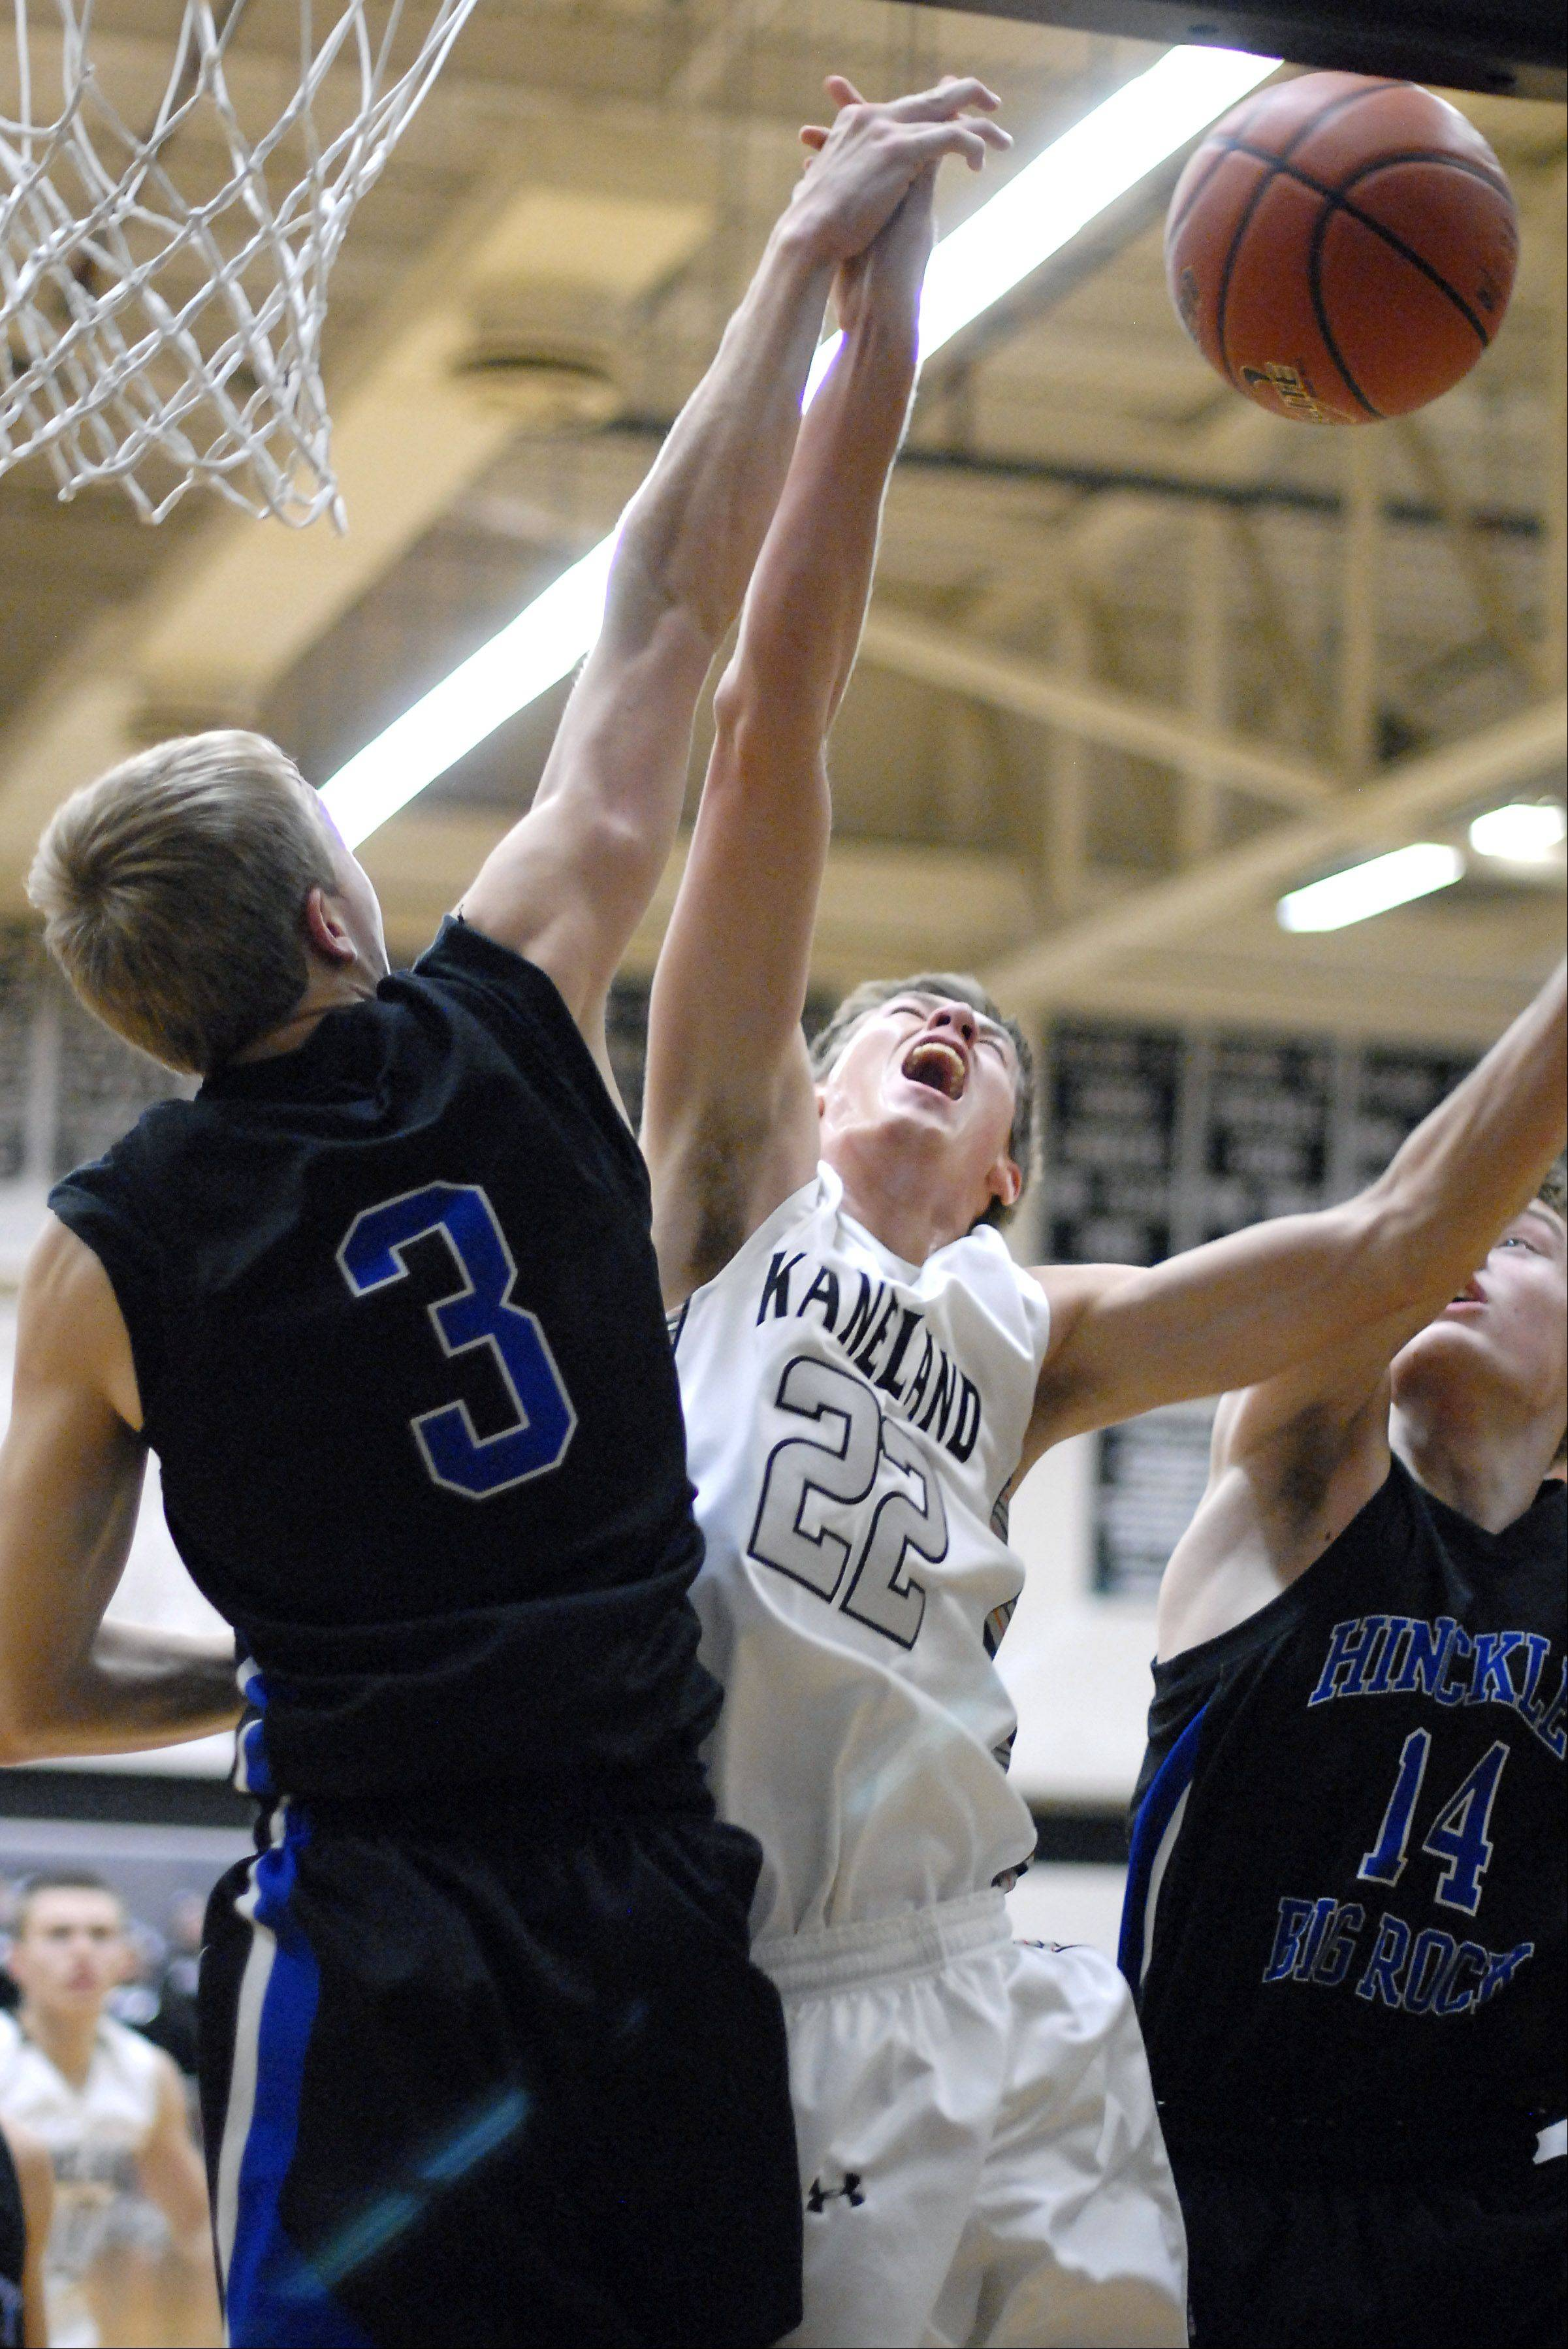 Kaneland's Dan Miller is denied a shot by Hinckley-Big Rock's Jared Madden in the second quarter on Tuesday, December 11.